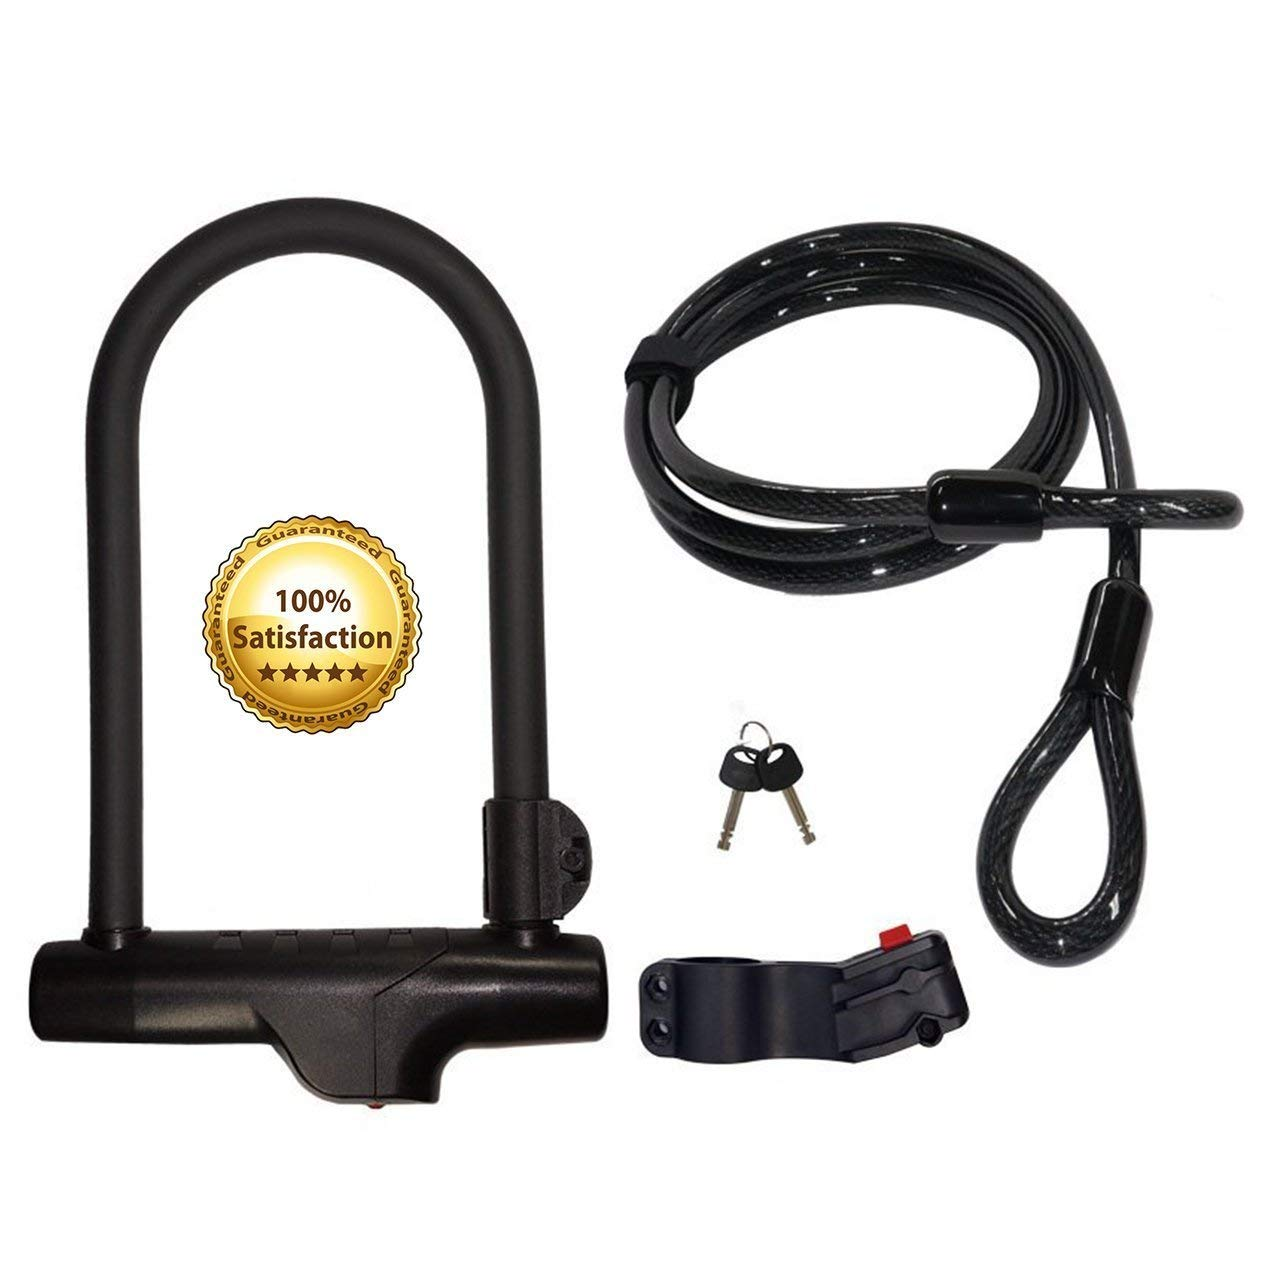 cocoweb heavy duty bike locks